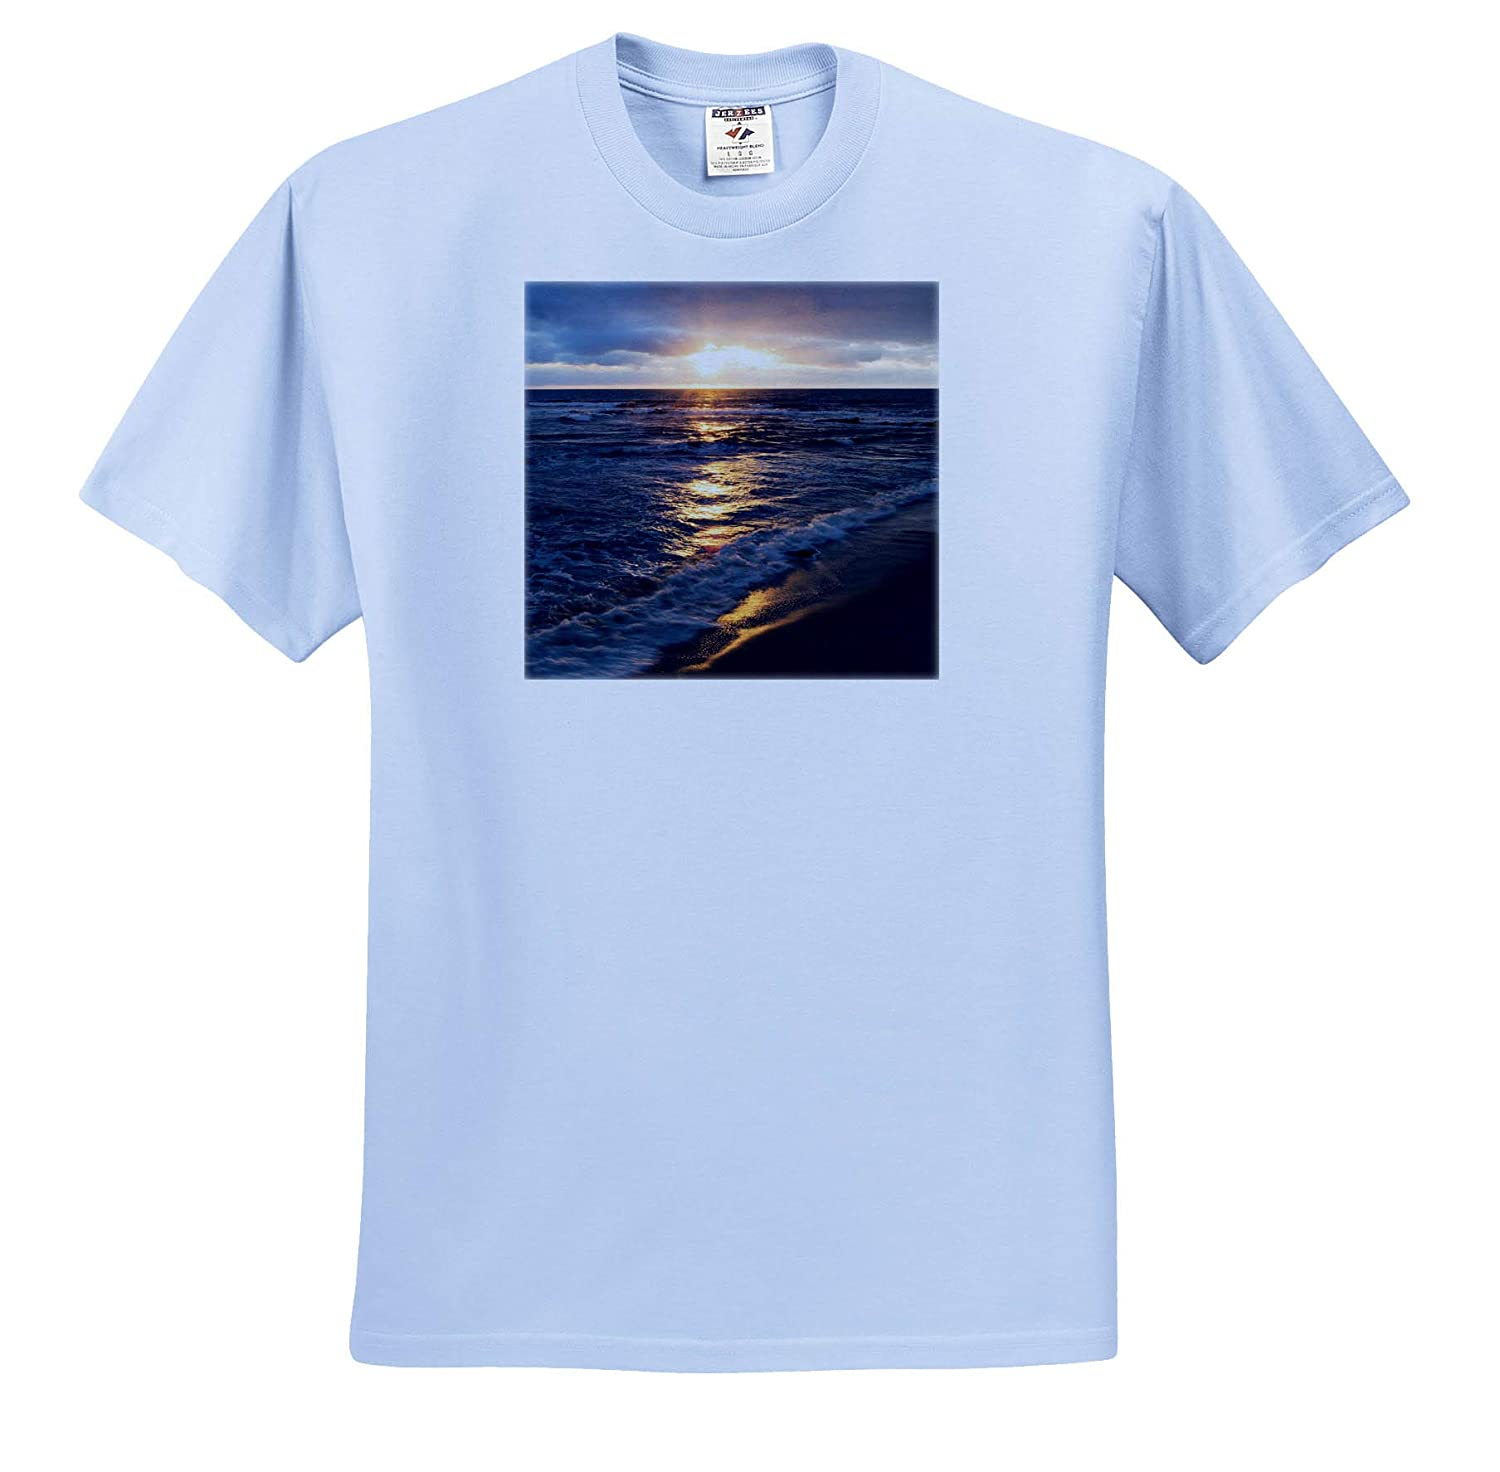 ts/_314636 La Jolla Sunset Over Beach Adult T-Shirt XL USA 3dRose Danita Delimont California Seascapes